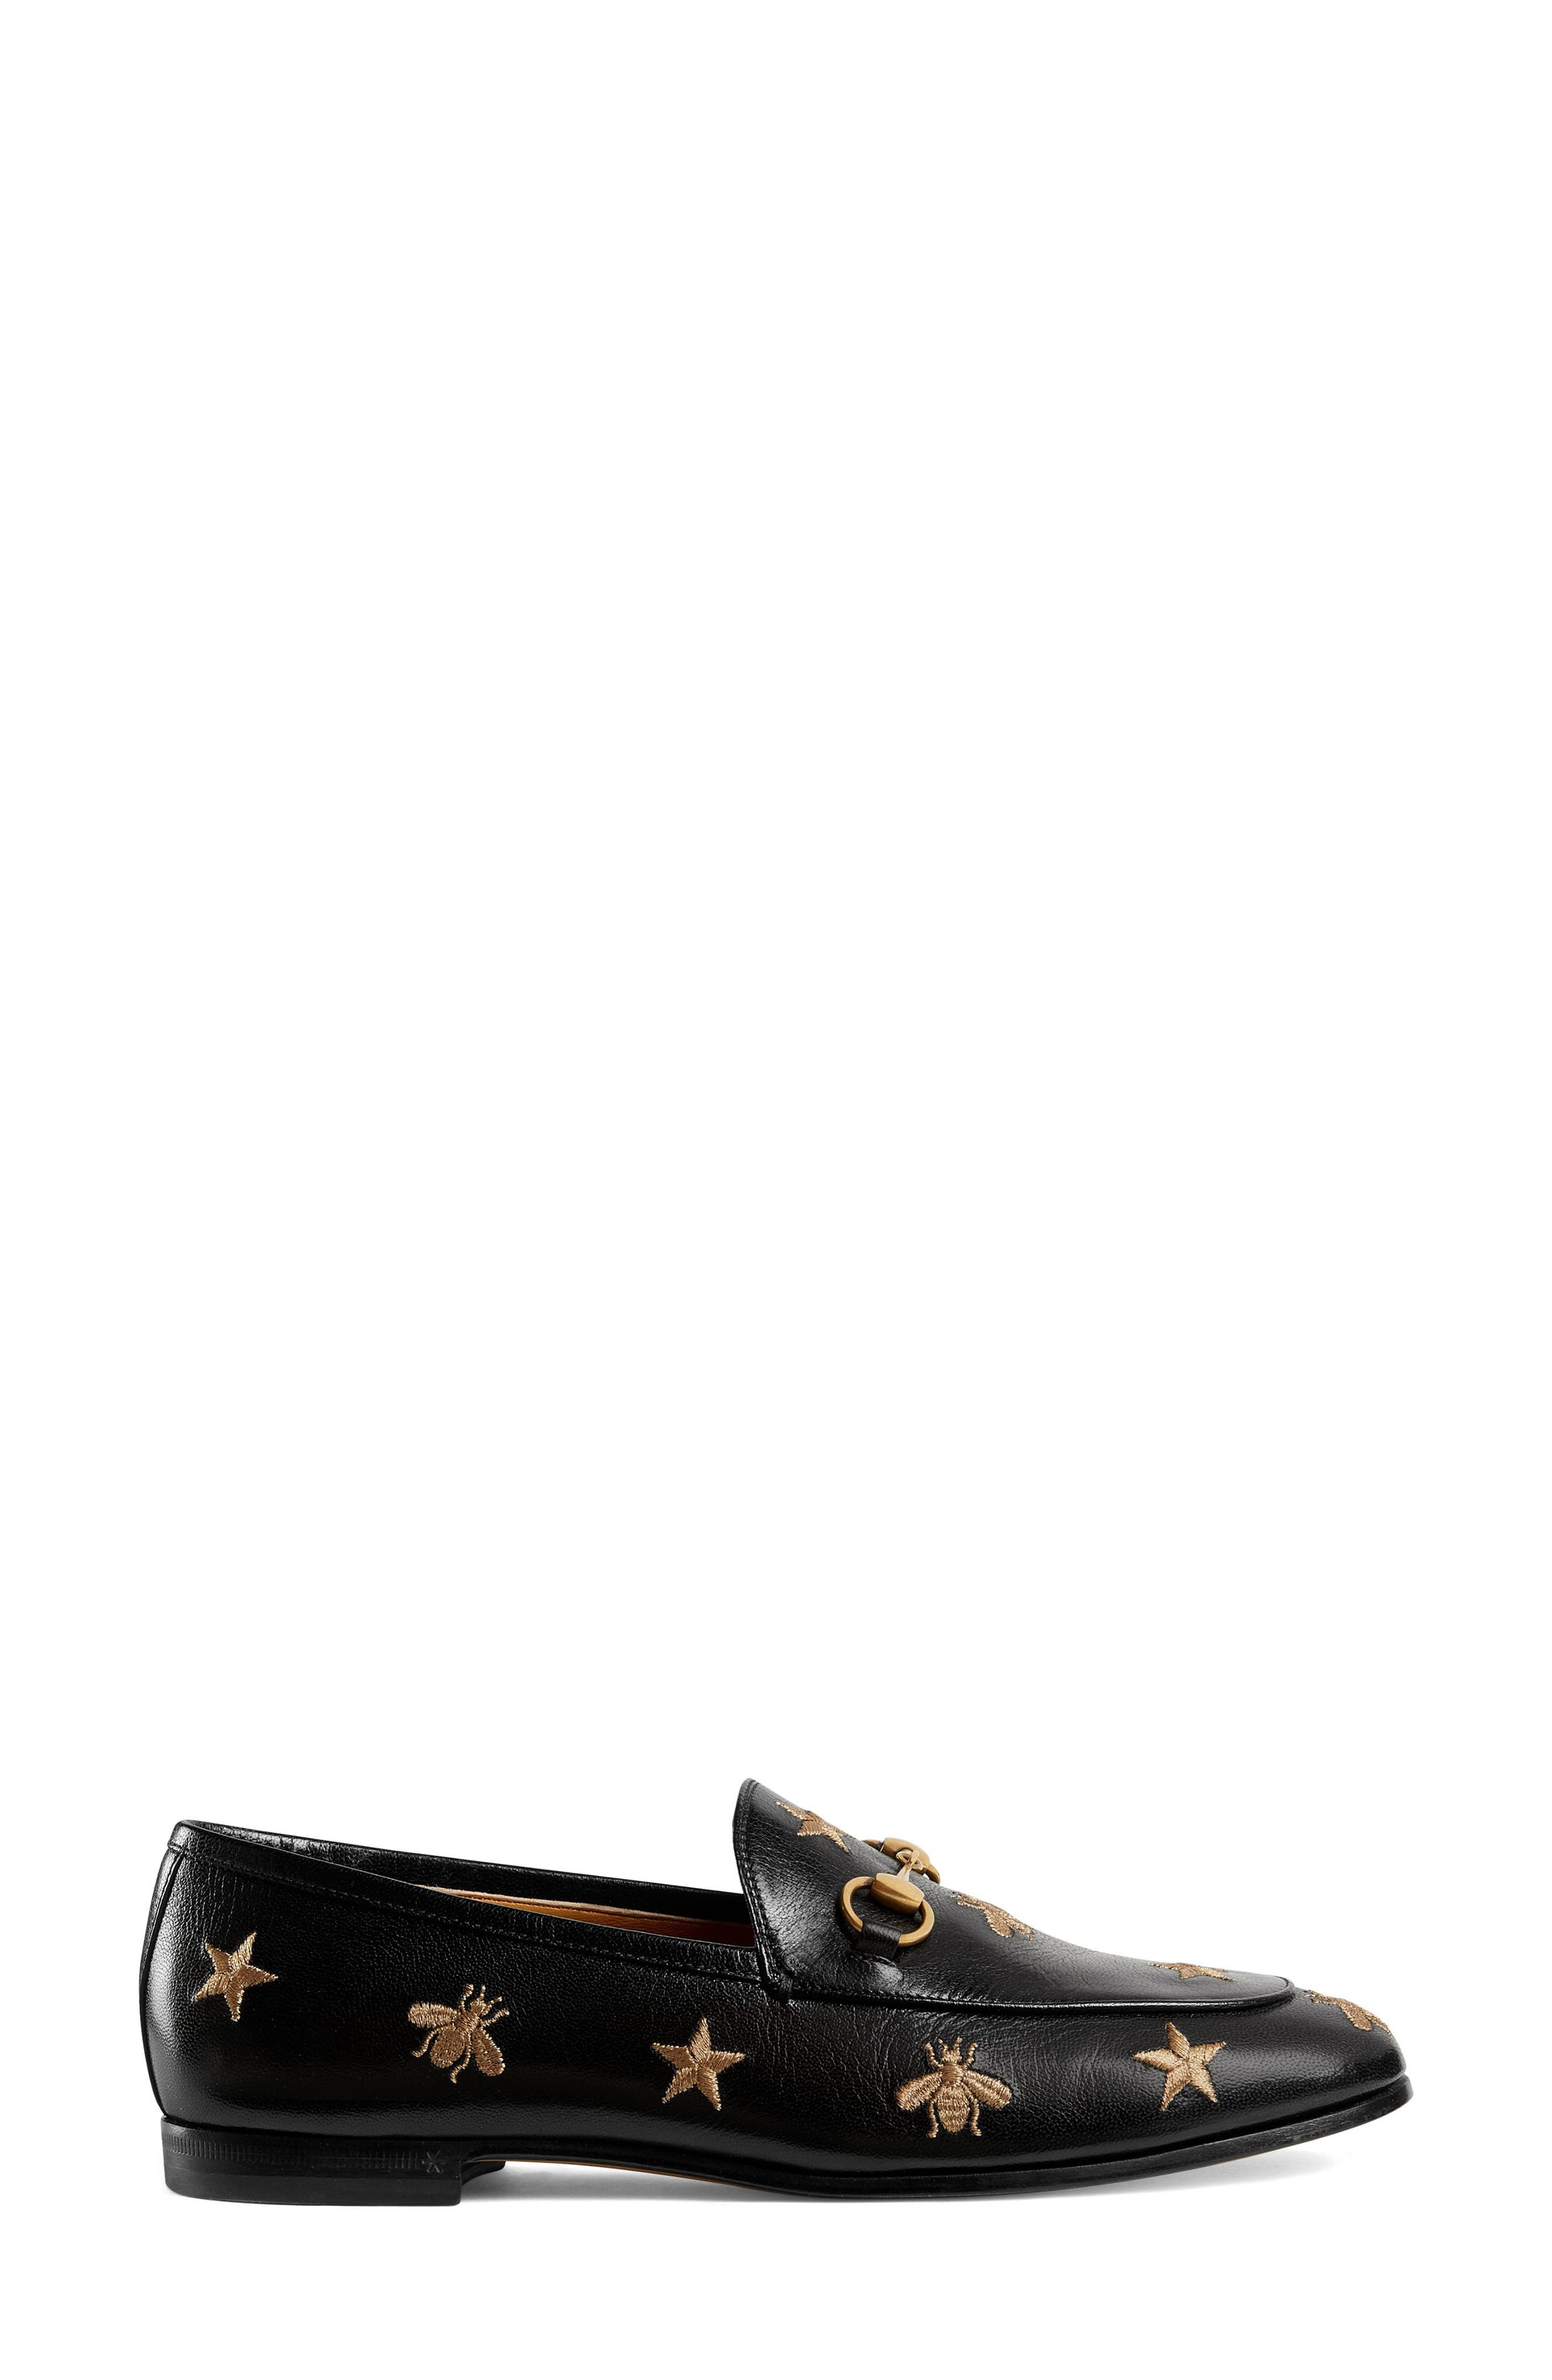 GUCCI, Jordaan Embroidered Bee Loafer, Alternate thumbnail 2, color, BLACK